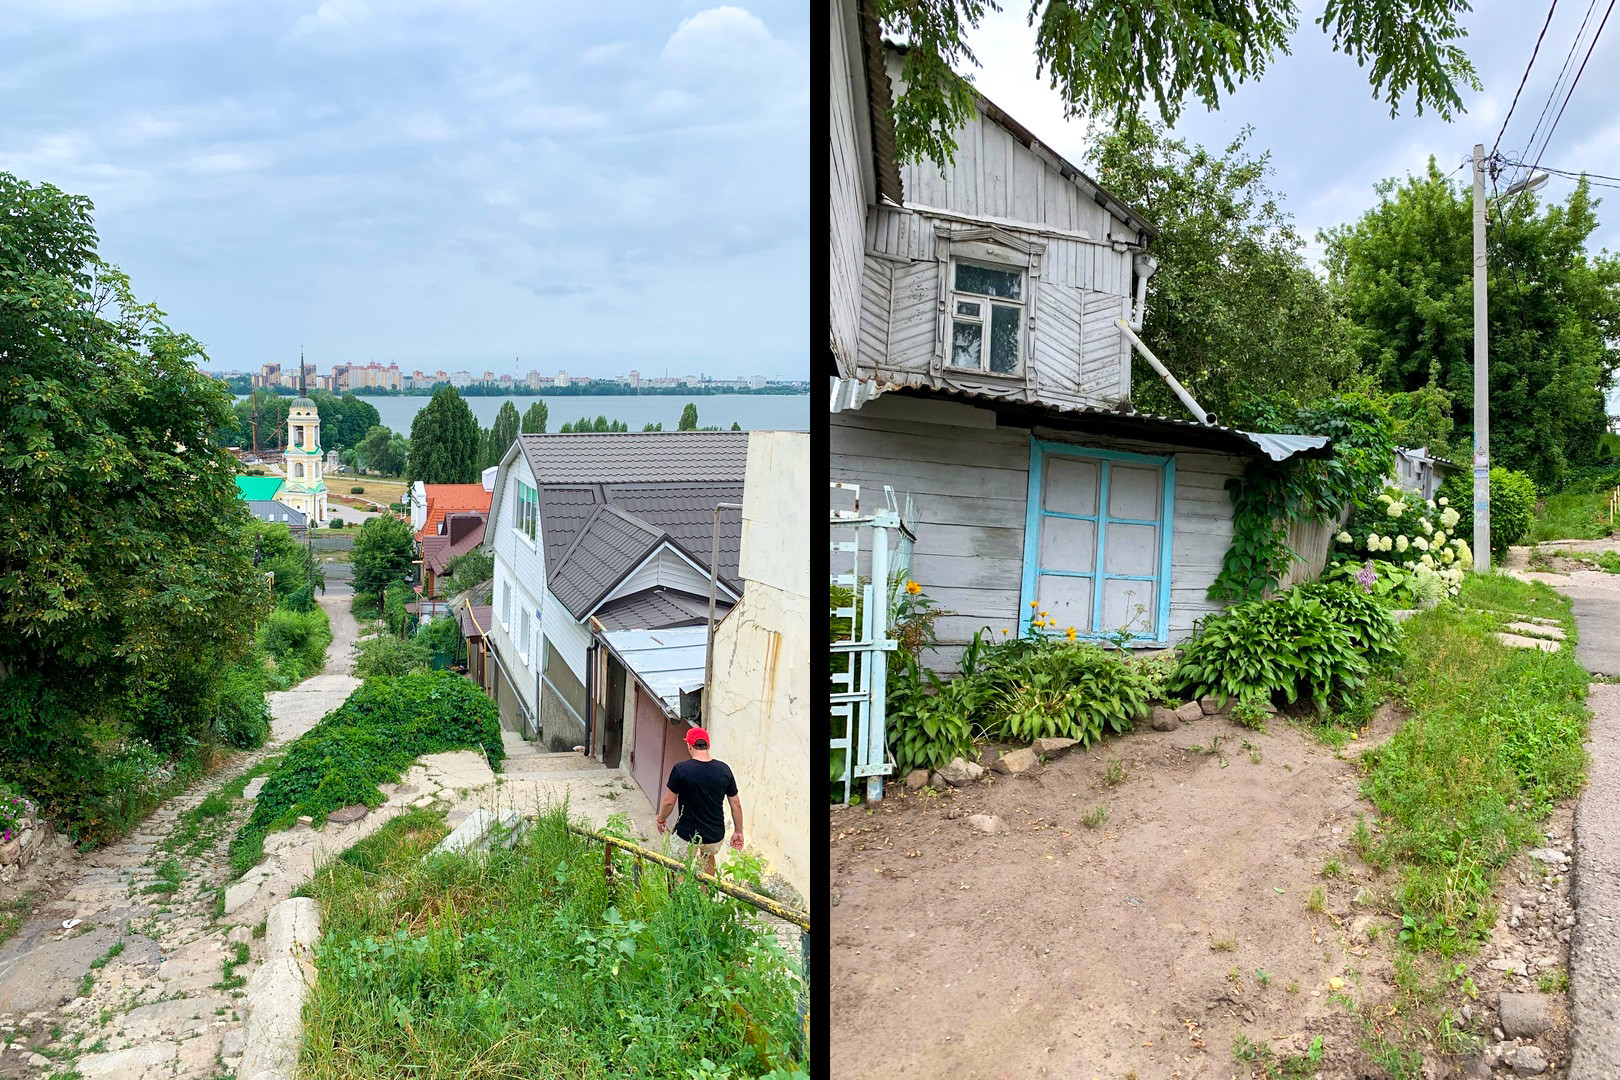 Downhill streets on route to the Voronezh River